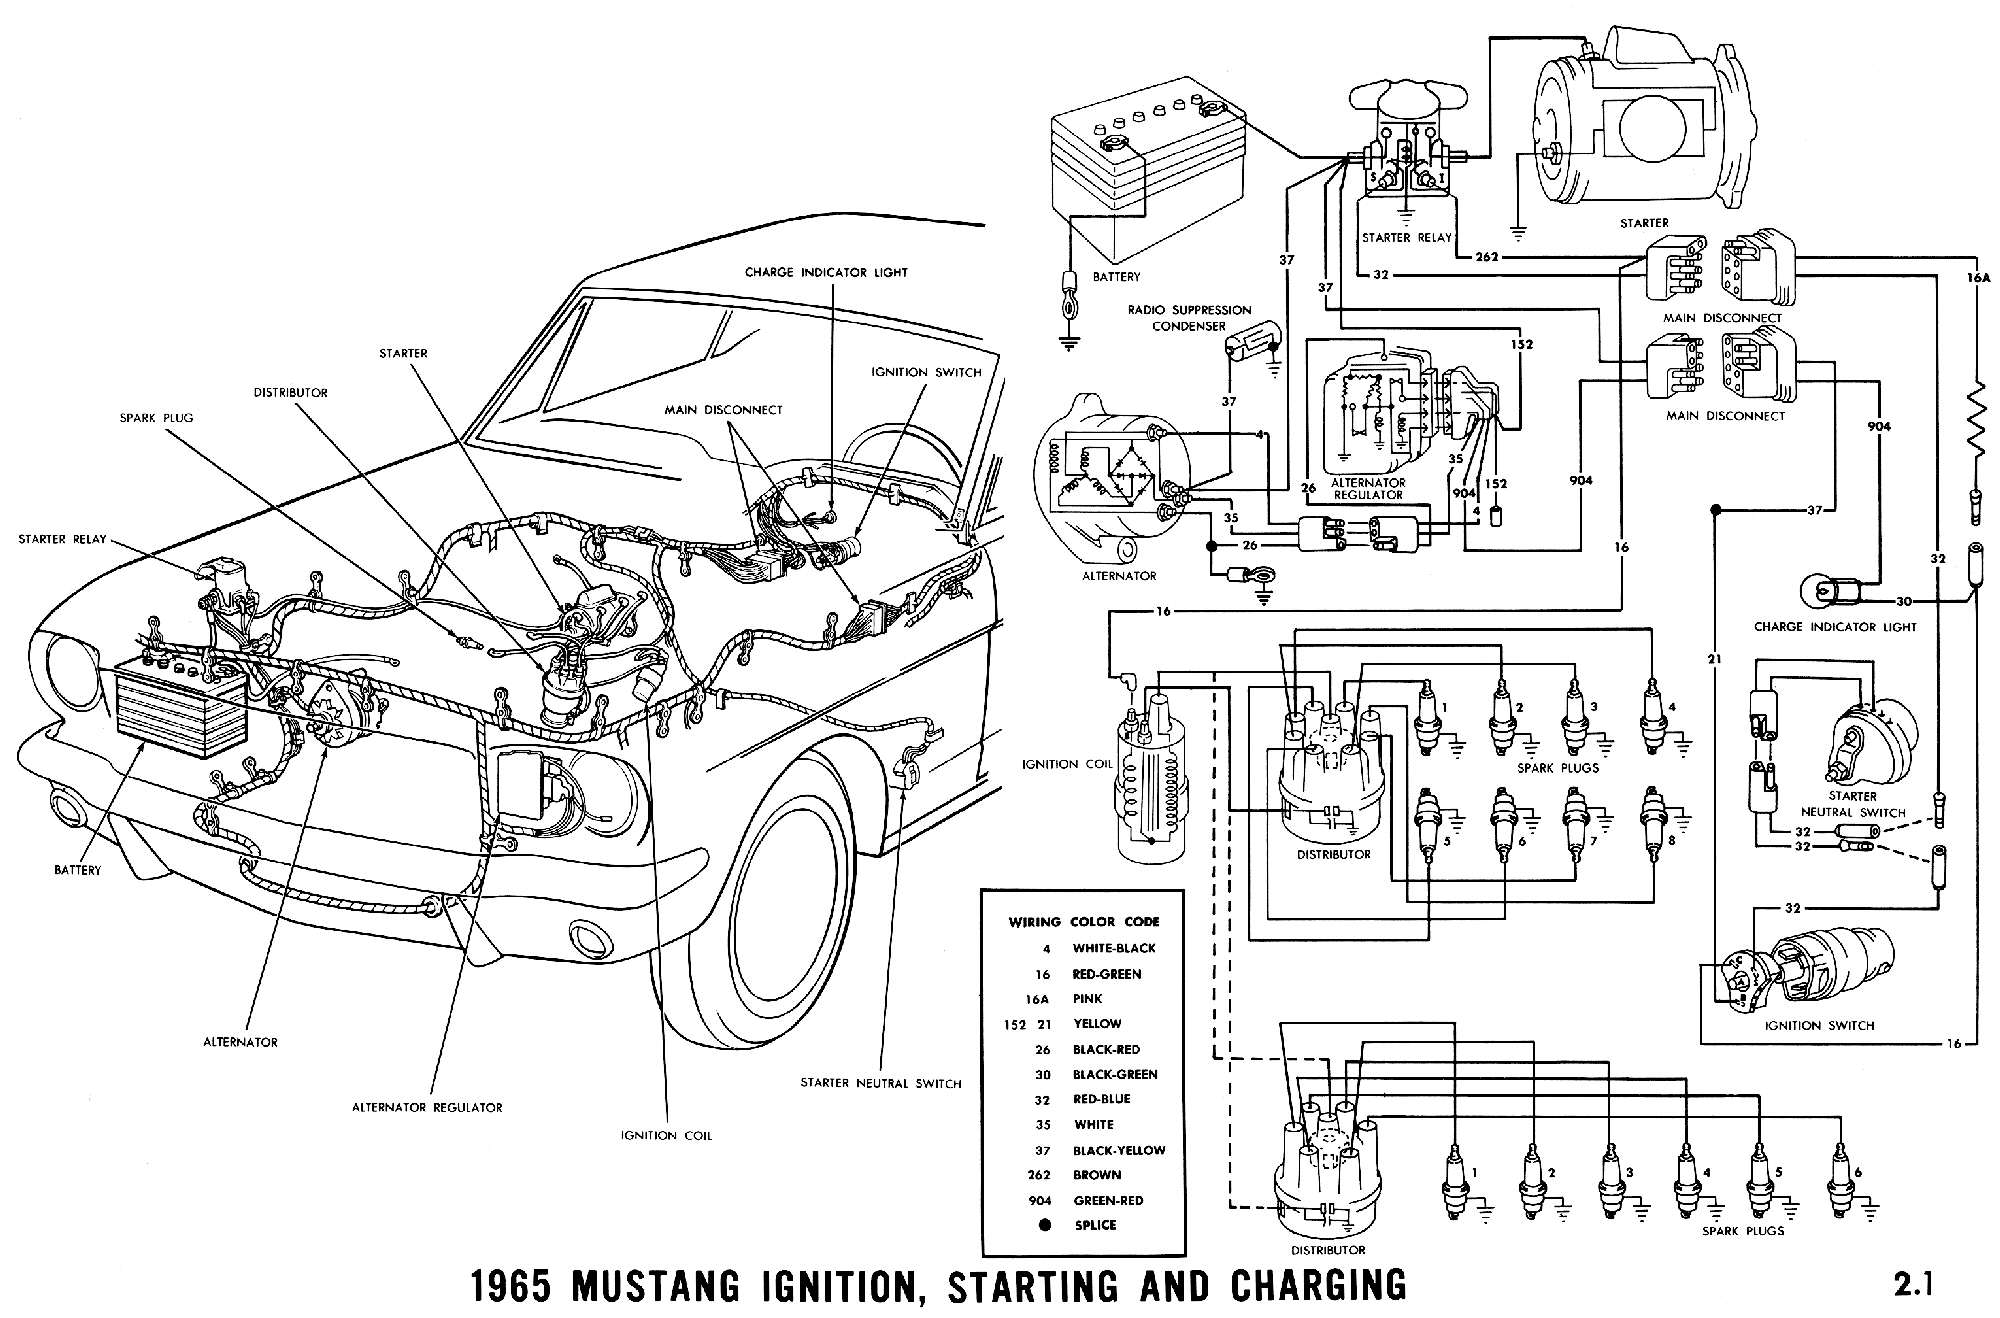 1965 Mustang Ignition, Starting and Charging